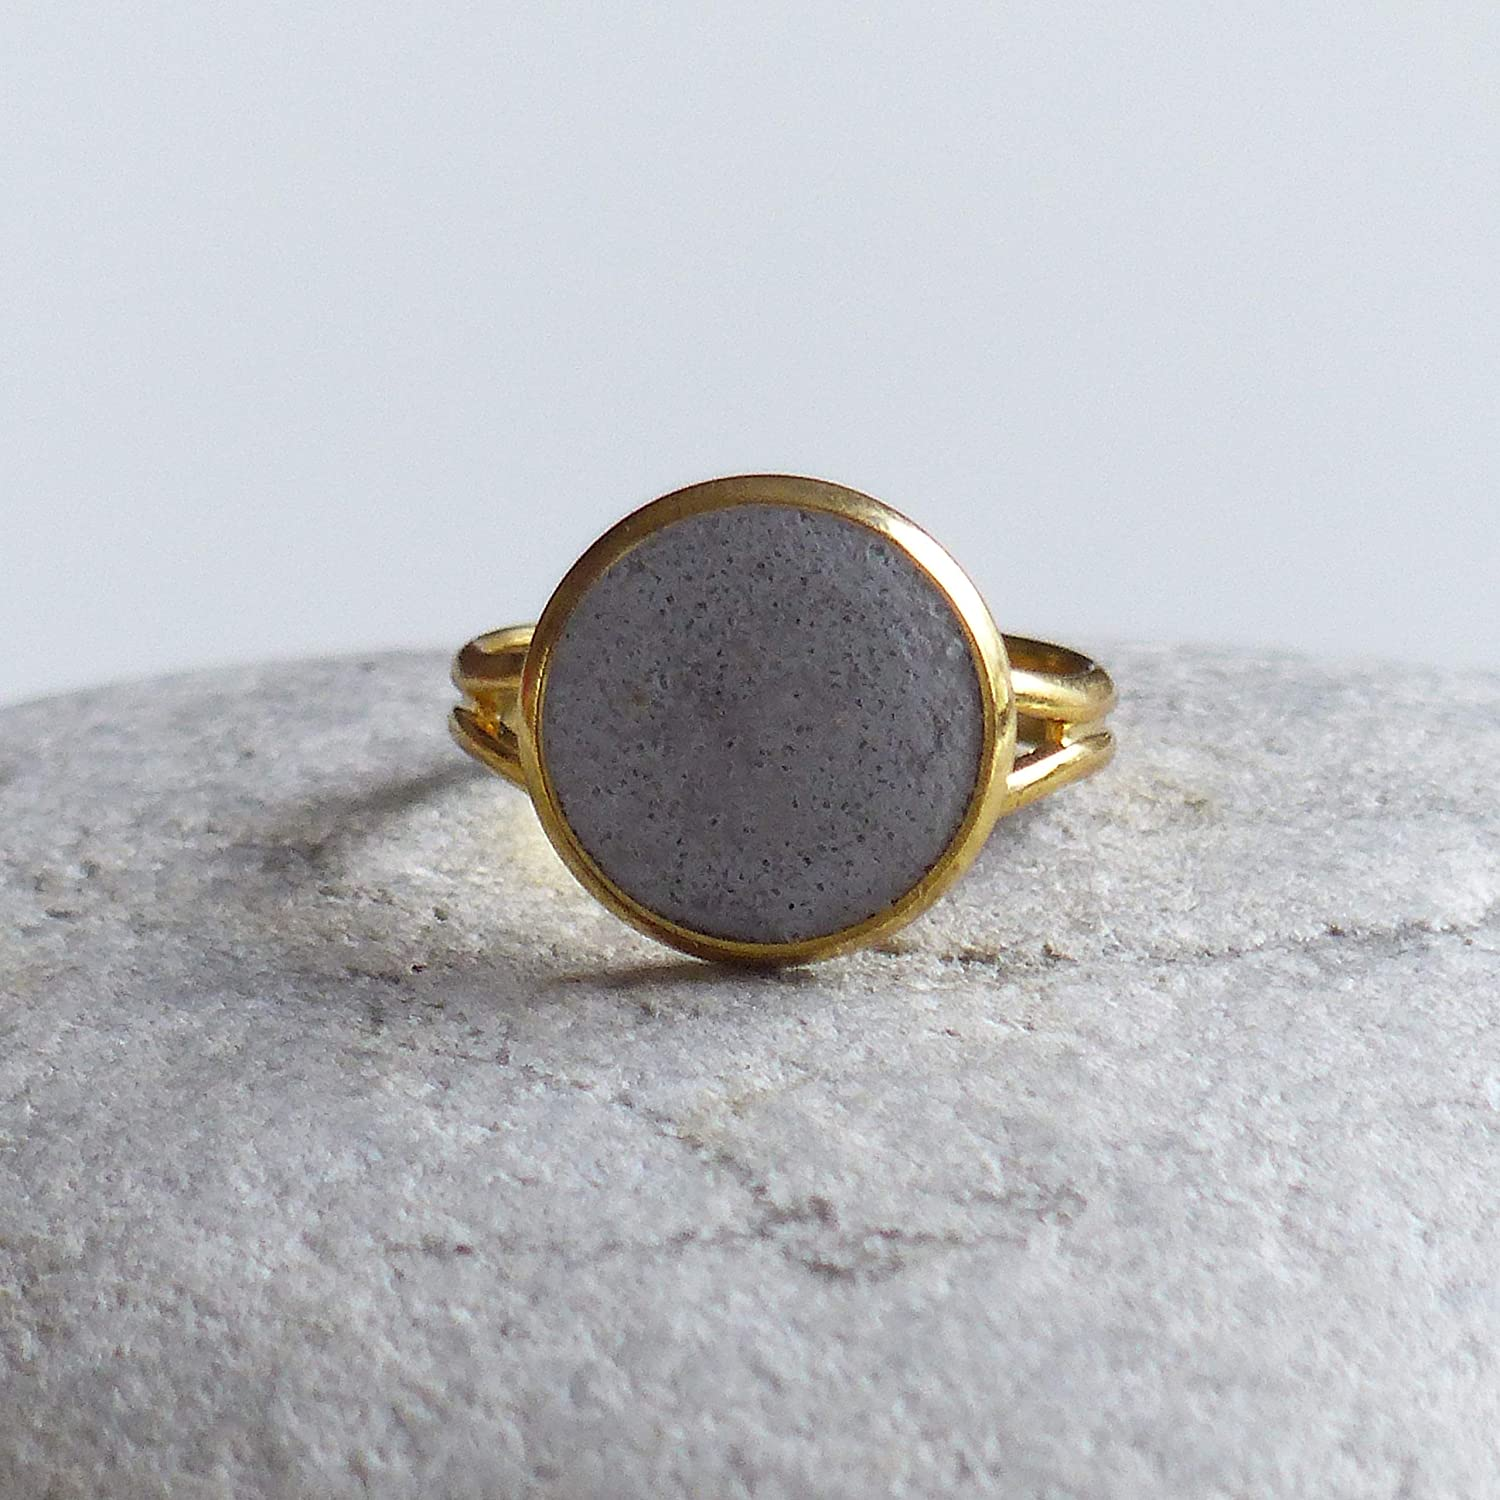 Amazon.com: Adjustable concrete dainty ring, Stainless steel boho ring: Handmade